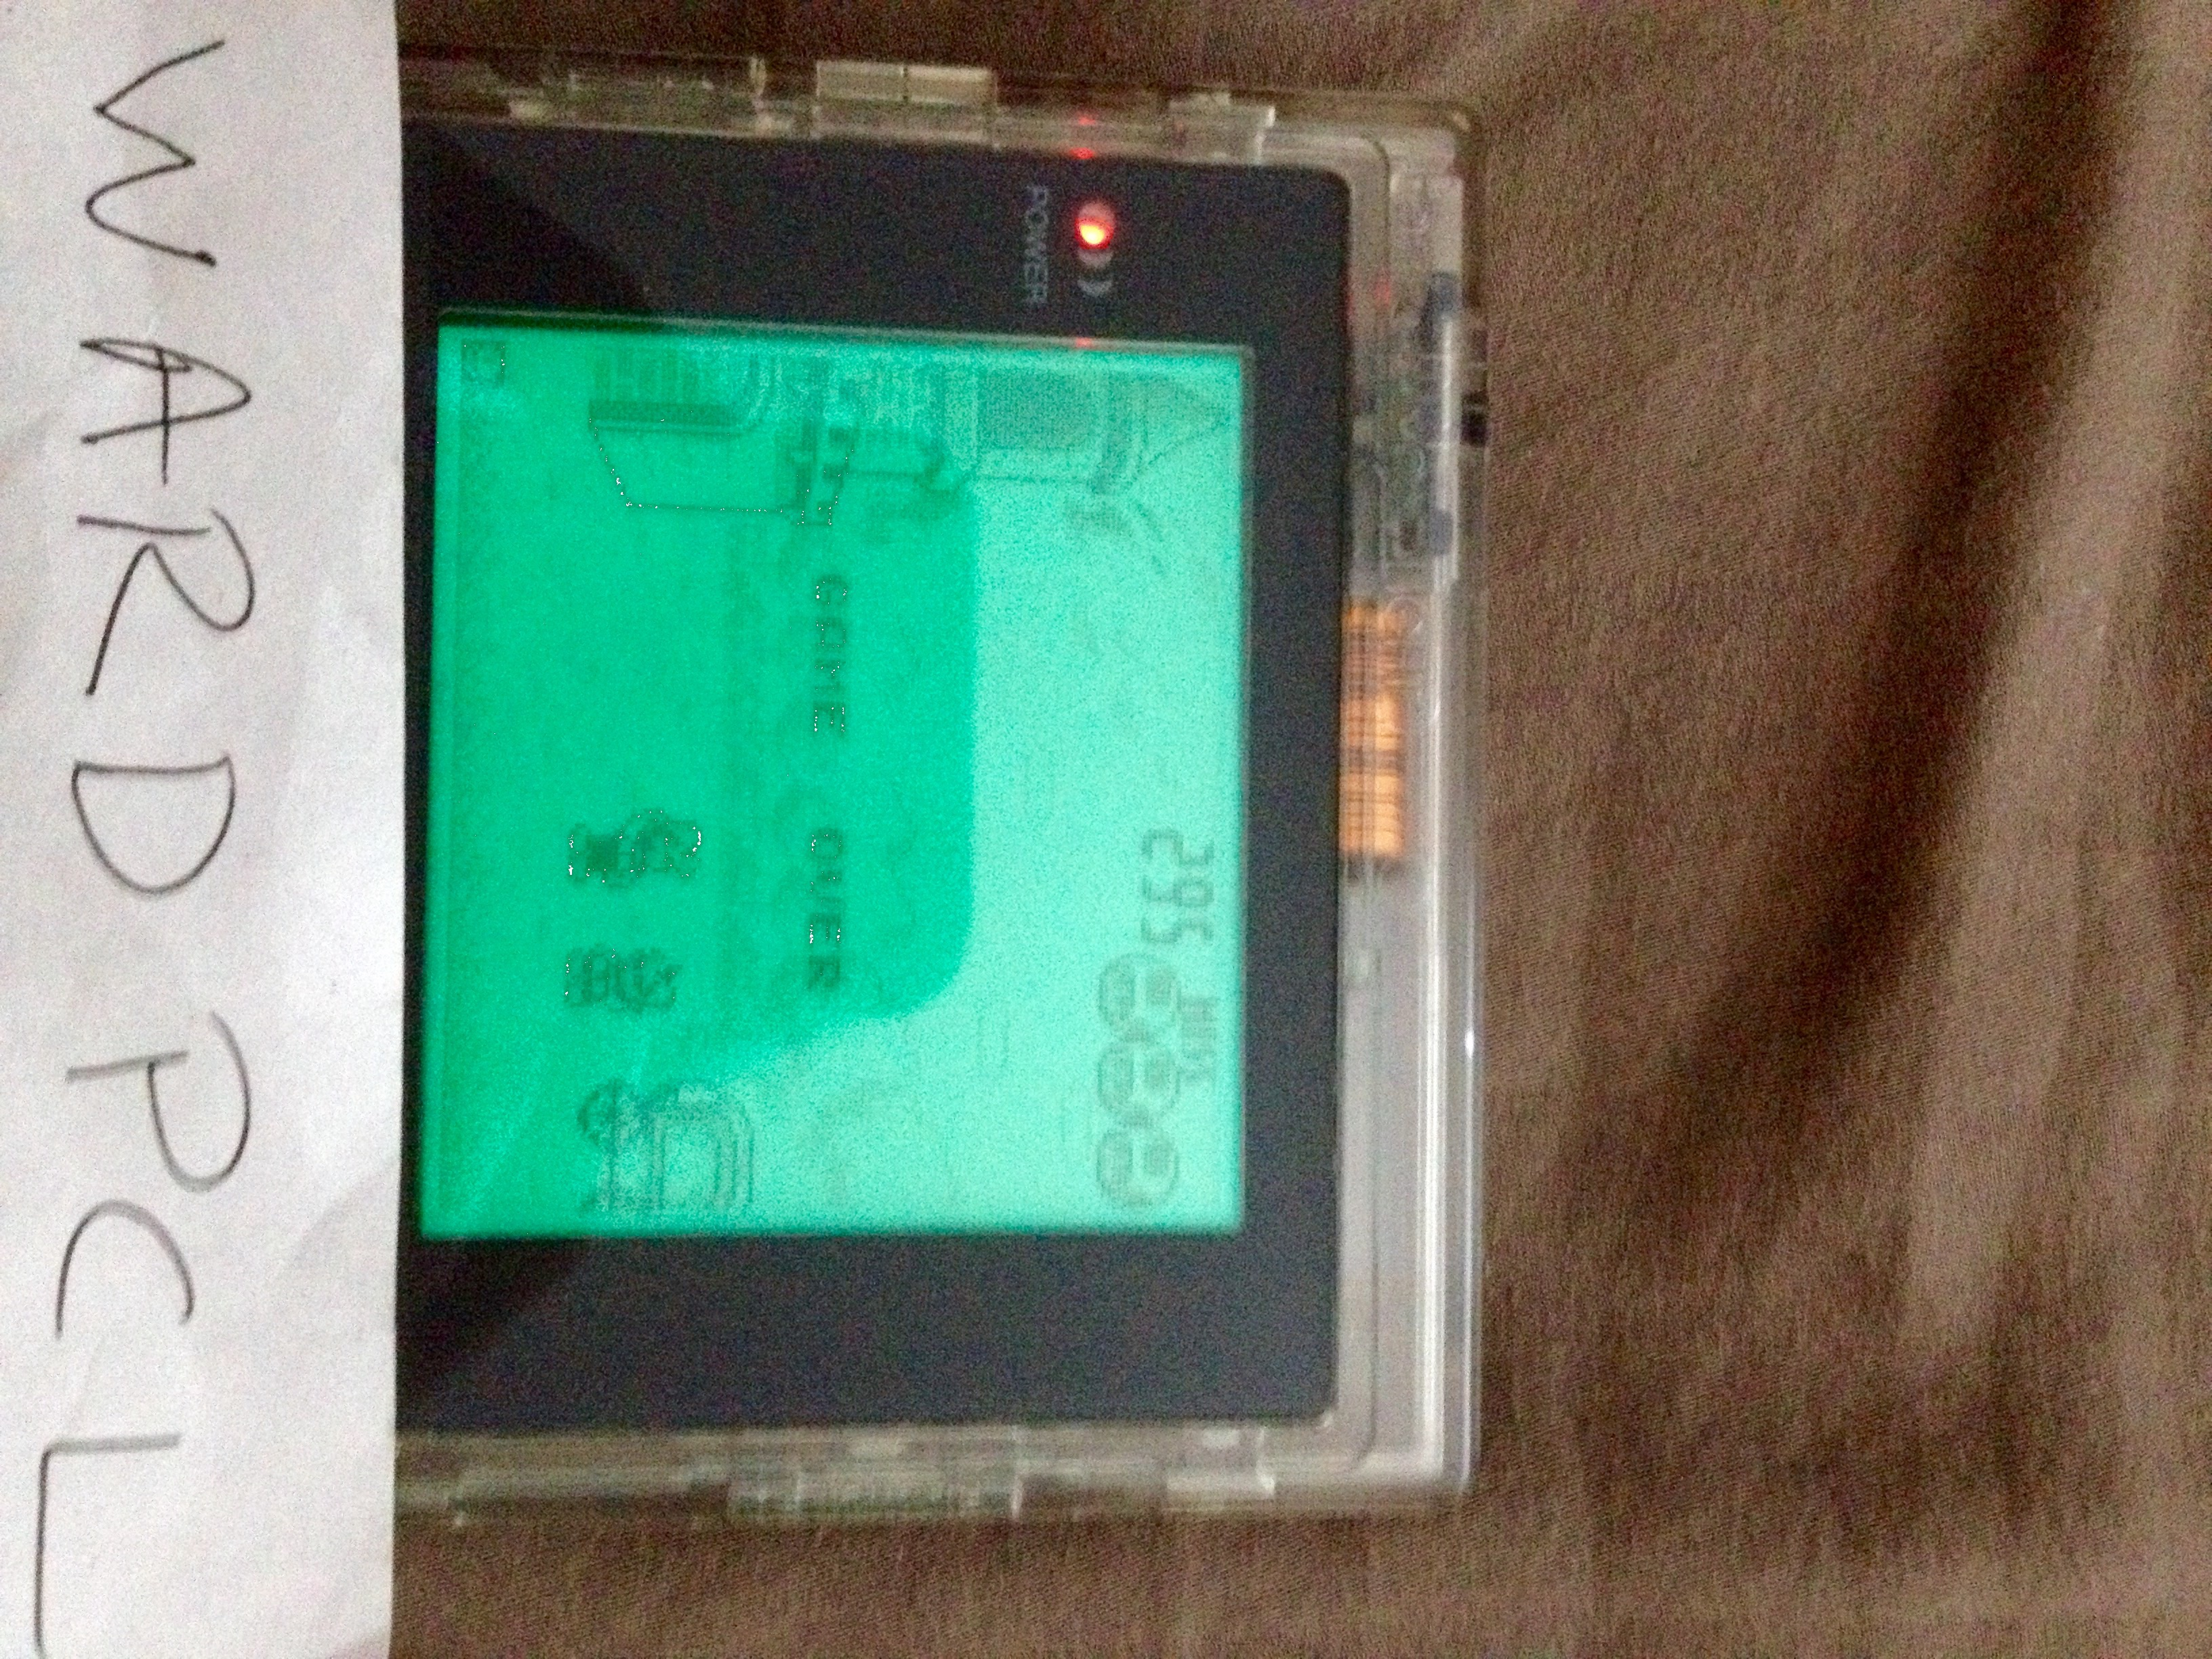 Wardpcl: Game & Watch Gallery: Fire [Modern: Hard] (Game Boy) 295 points on 2015-07-05 08:06:23